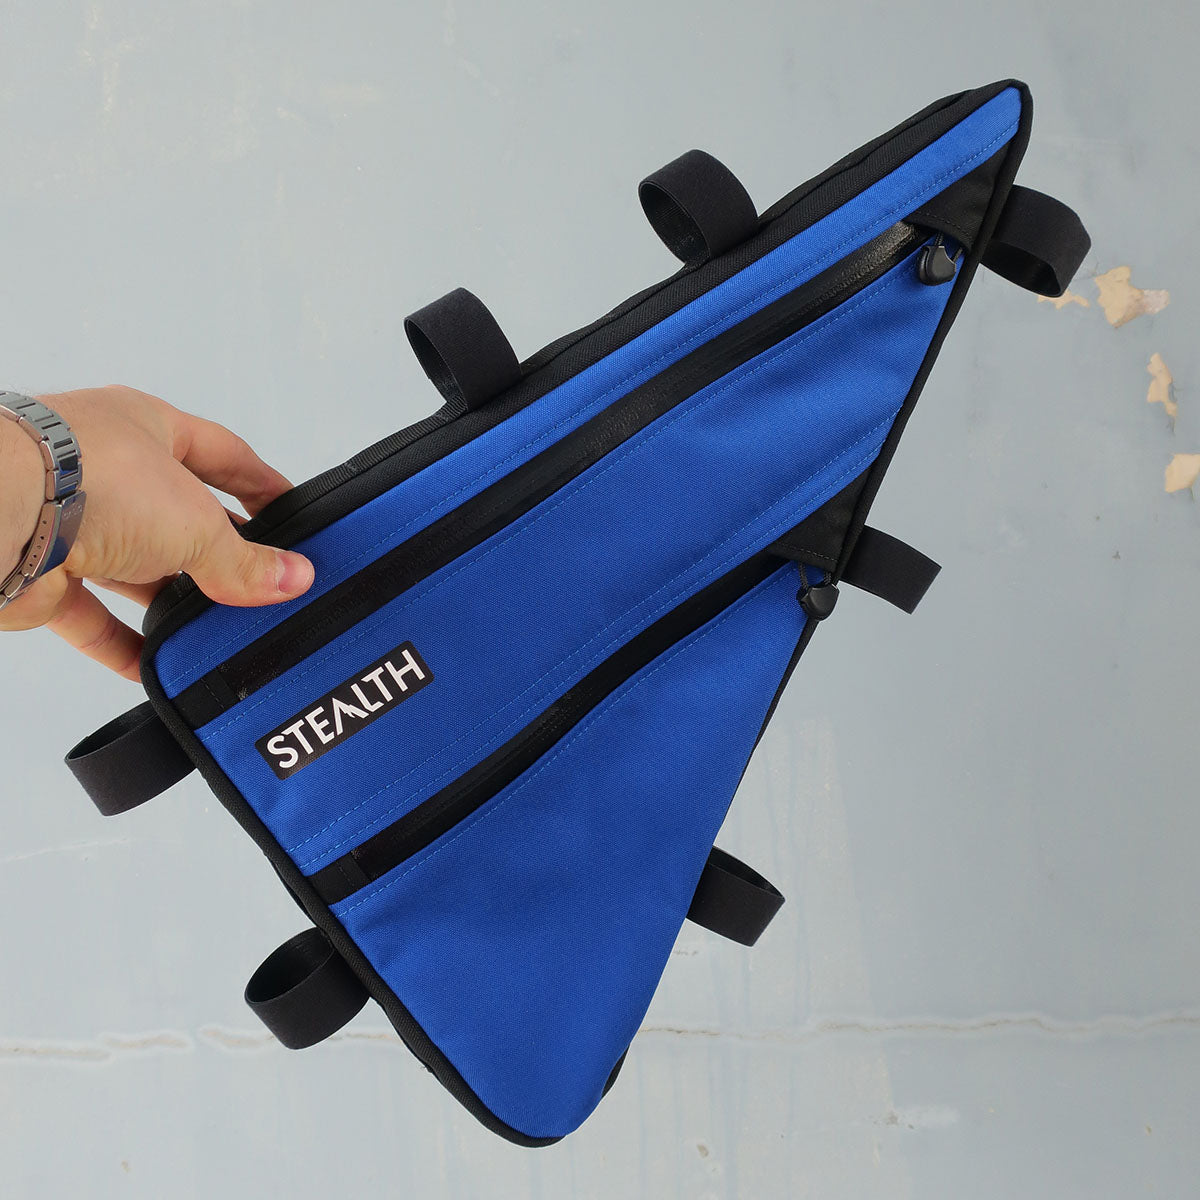 Purple custom frame bag for biking